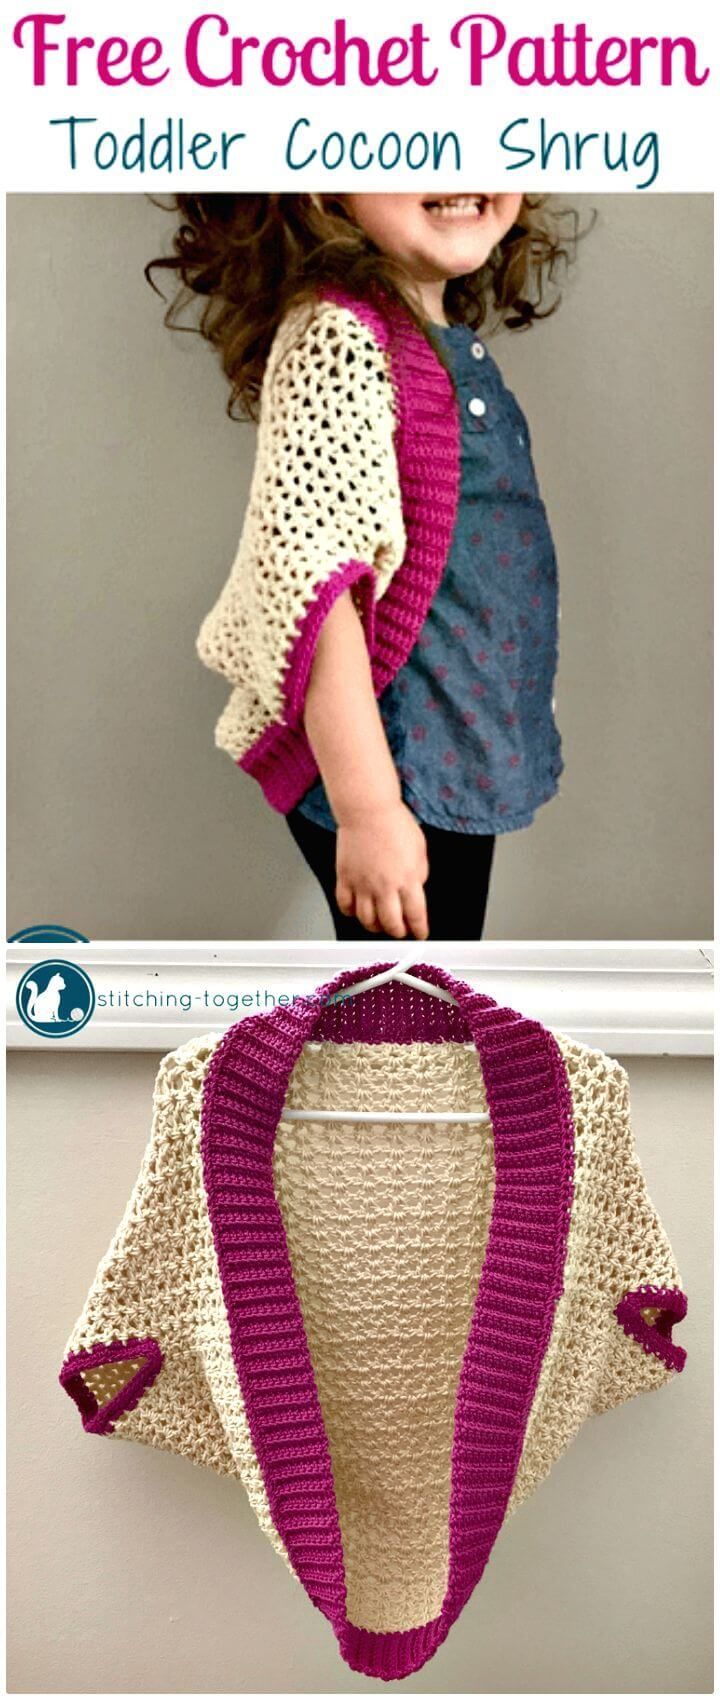 Free Crochet Toddler Cocoon Shrug Pattern - Crochet Shrug Patterns - 20 Free Unique Designs - DIY & Crafts